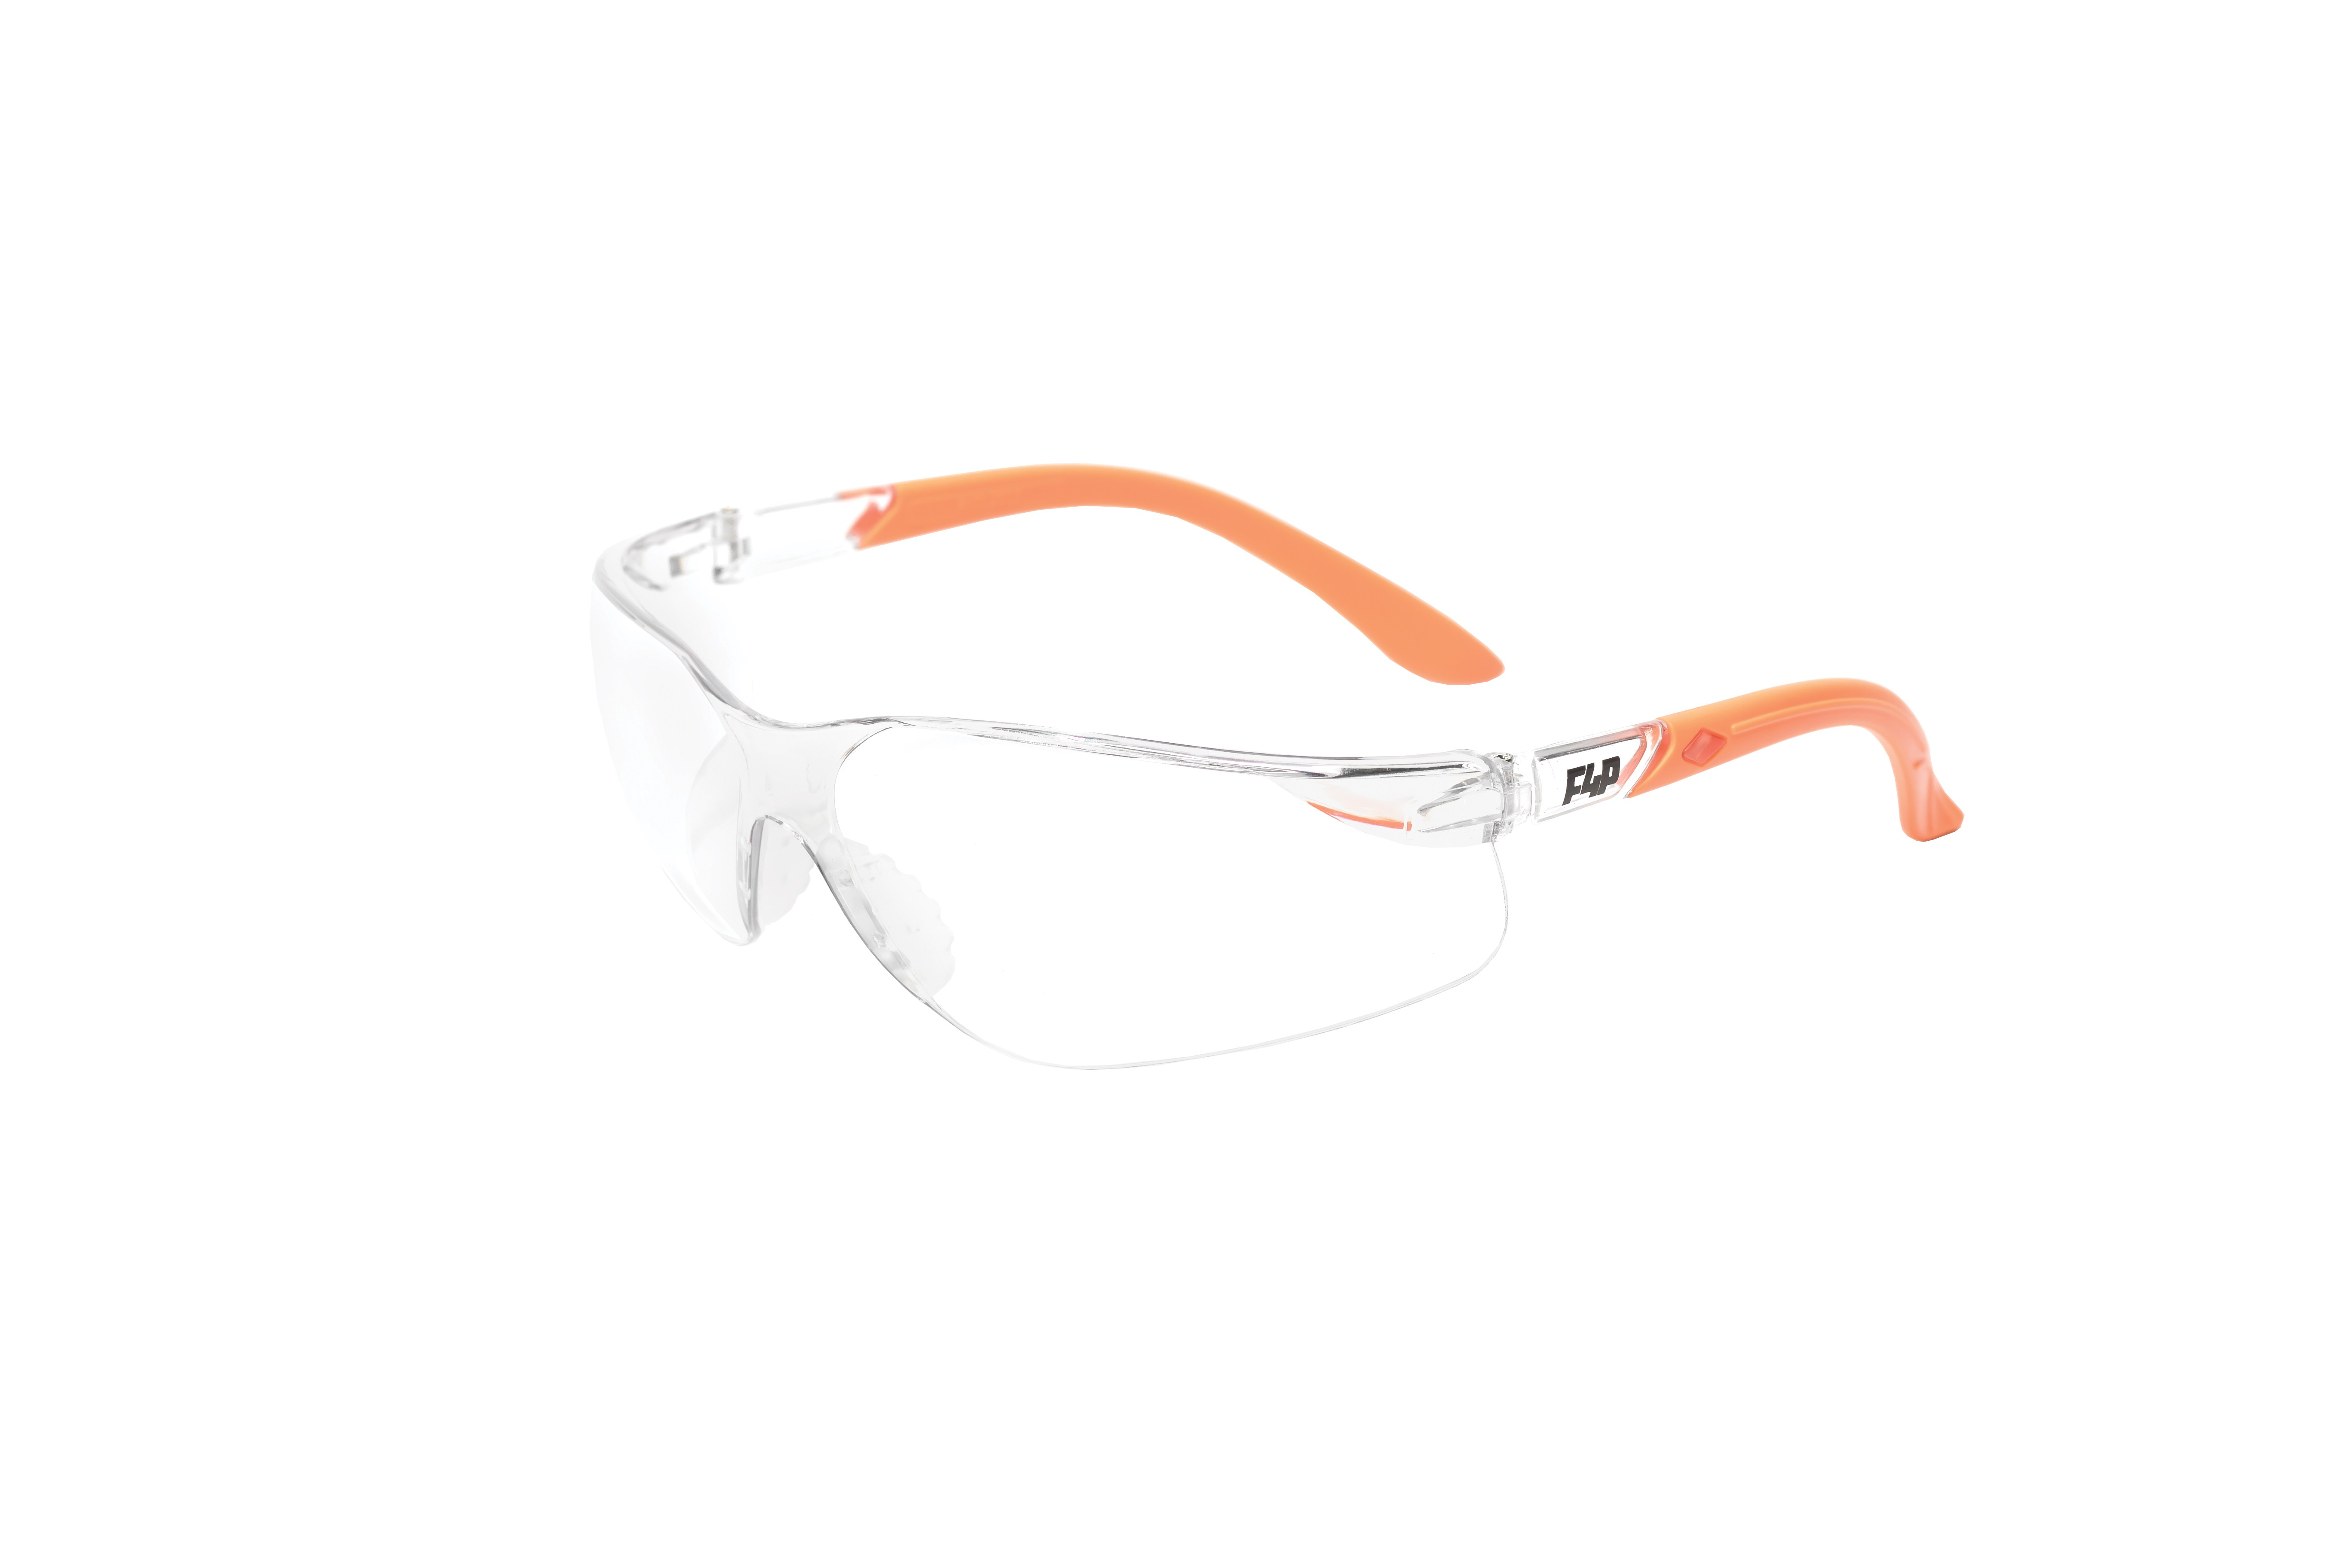 F4p Anti Fog Safety Glasses With Clear Lens Glasses